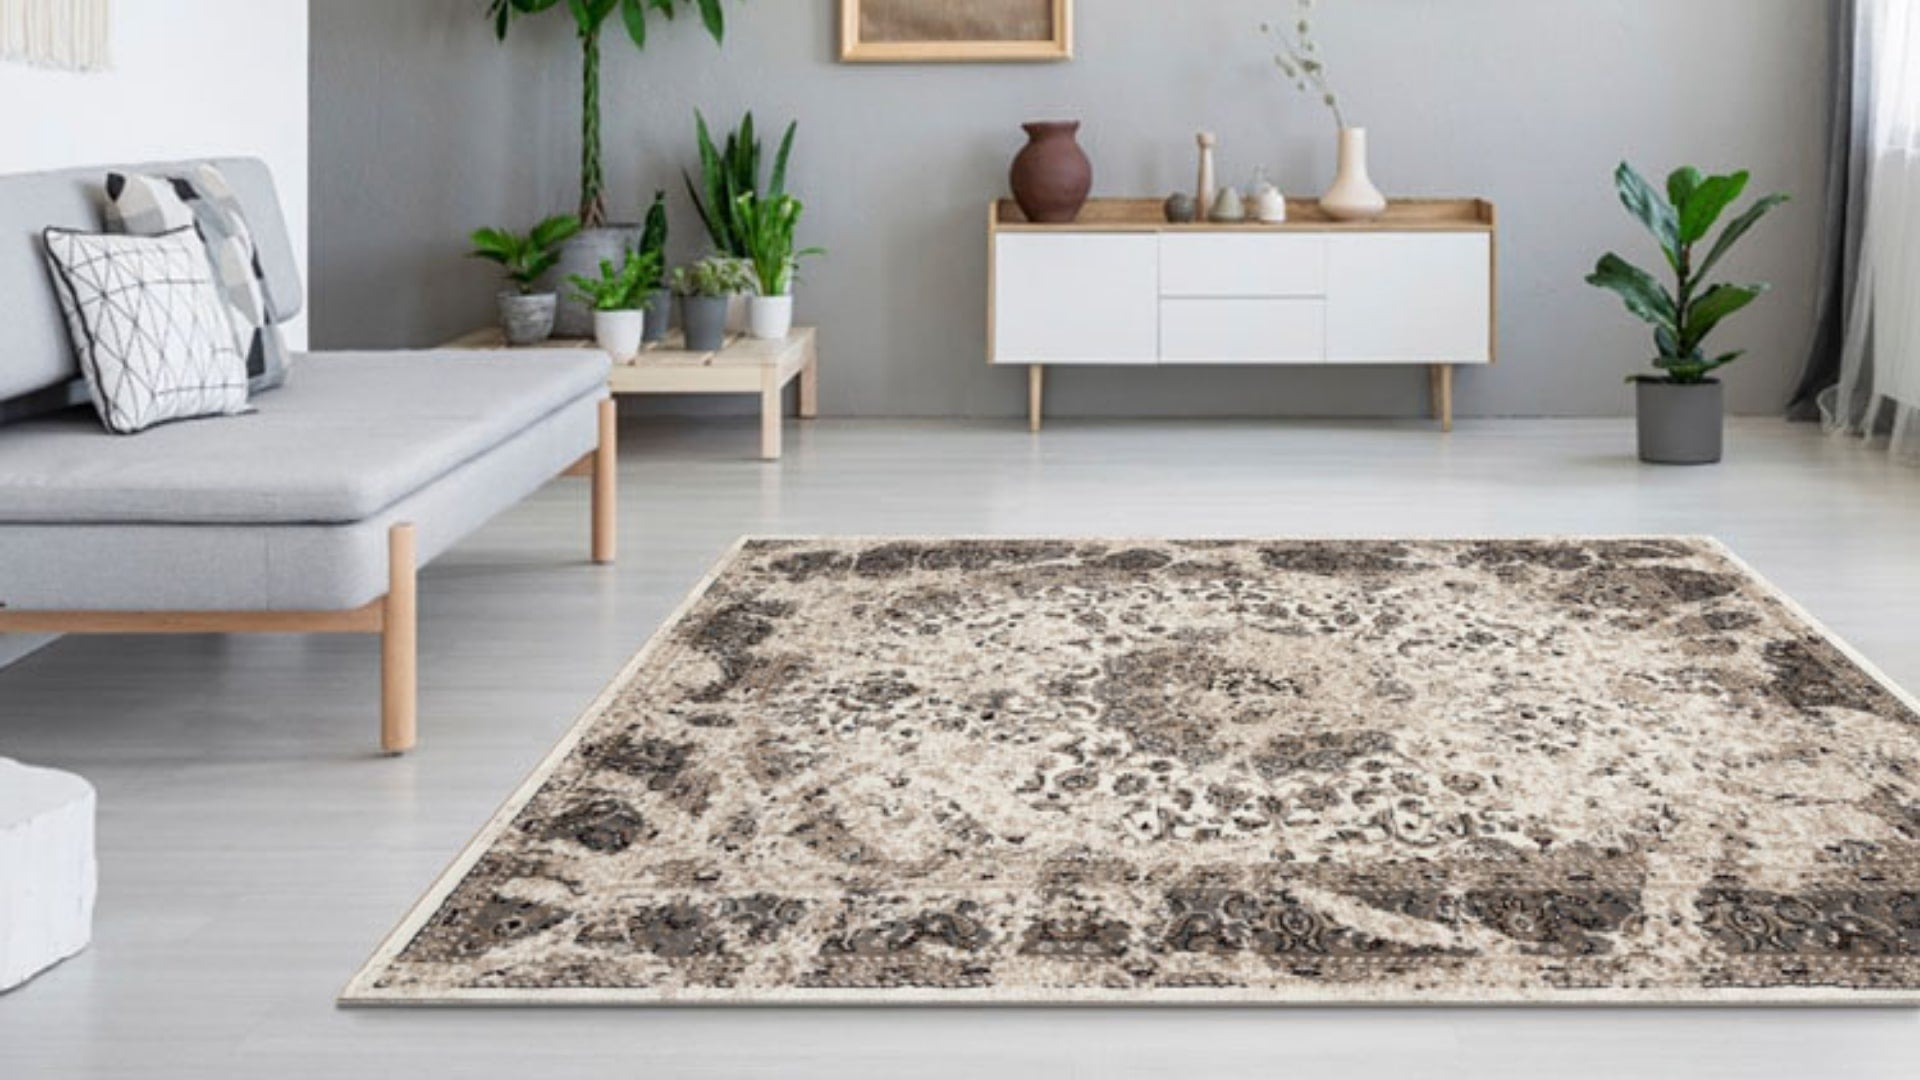 Things to Consider Before You Buy a Rug